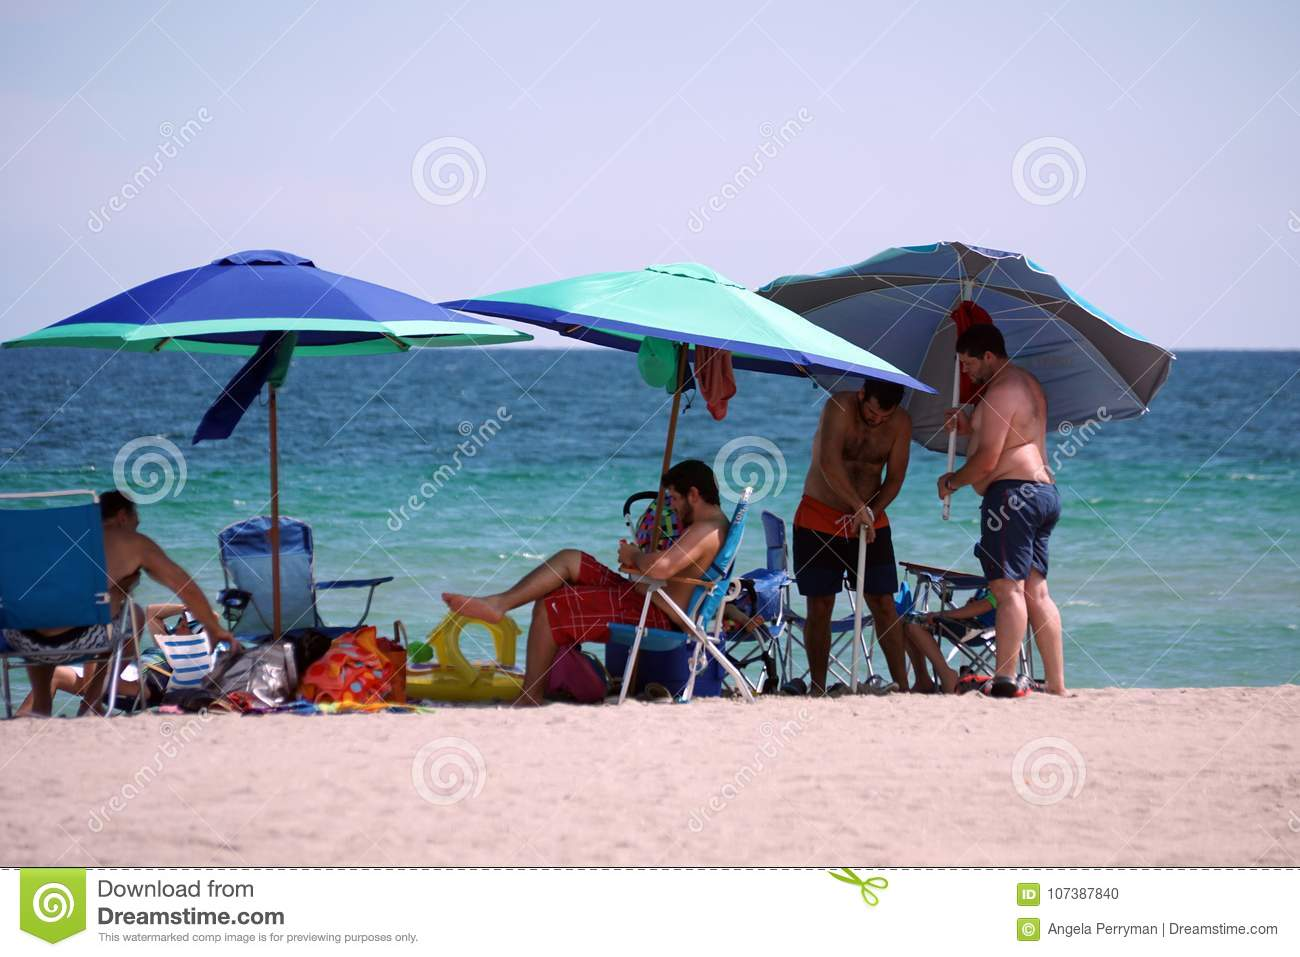 Tourists In Lounge Chairs Under Colorful Beach Umbrellas With The Atlantic  Ocean In The Background On Dania Beach, Fort Lauderdale, Florida, USA